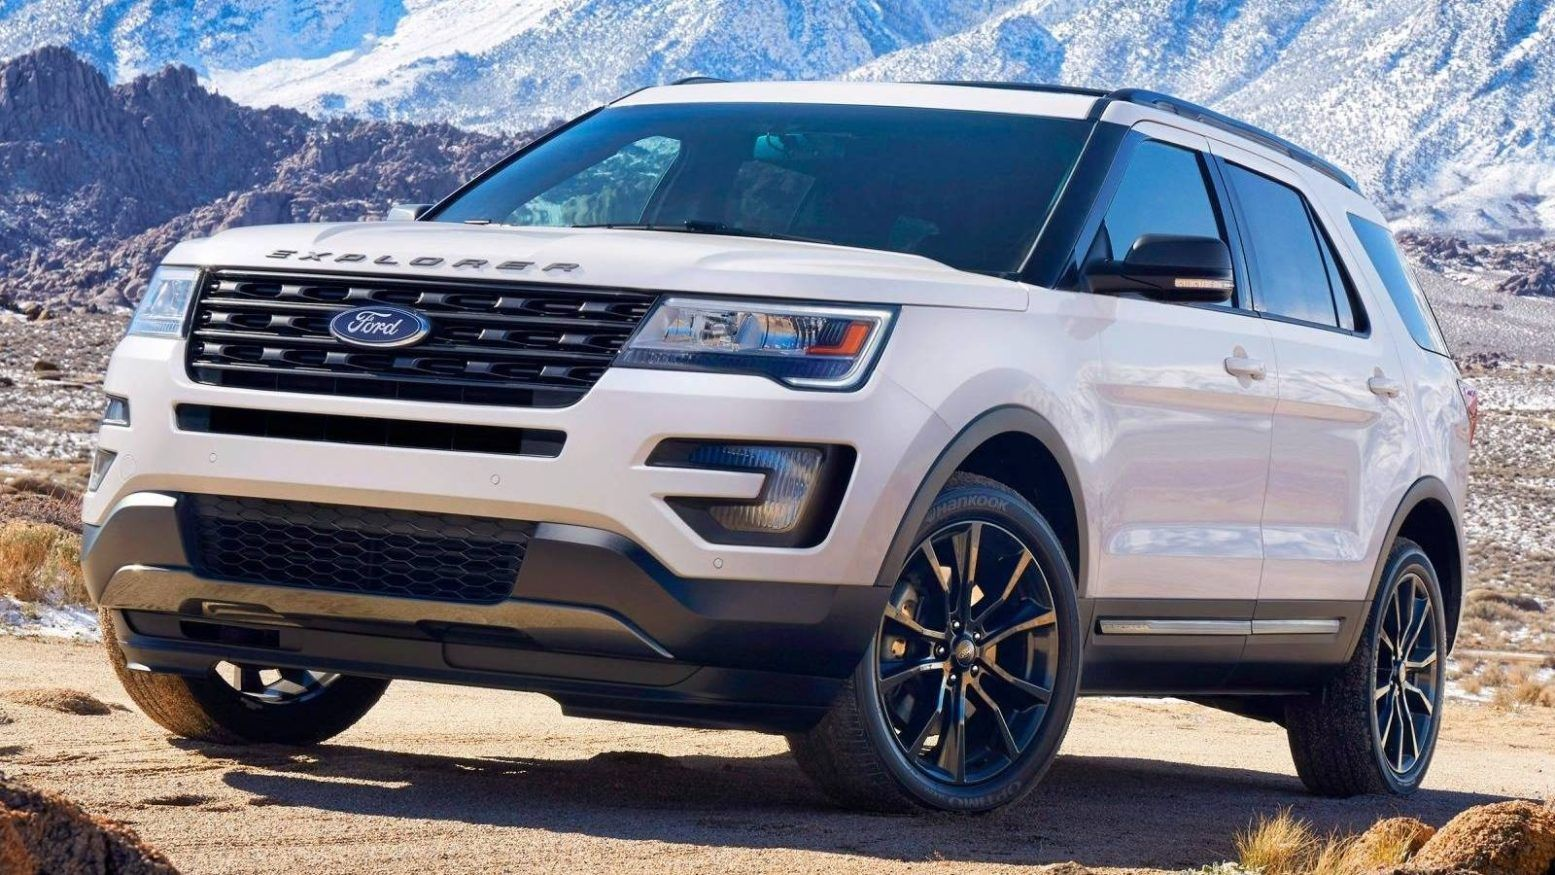 2019 The Ford Explorer Connect Release Date In 2020 2019 Ford Explorer Ford Explorer Sport Ford Explorer